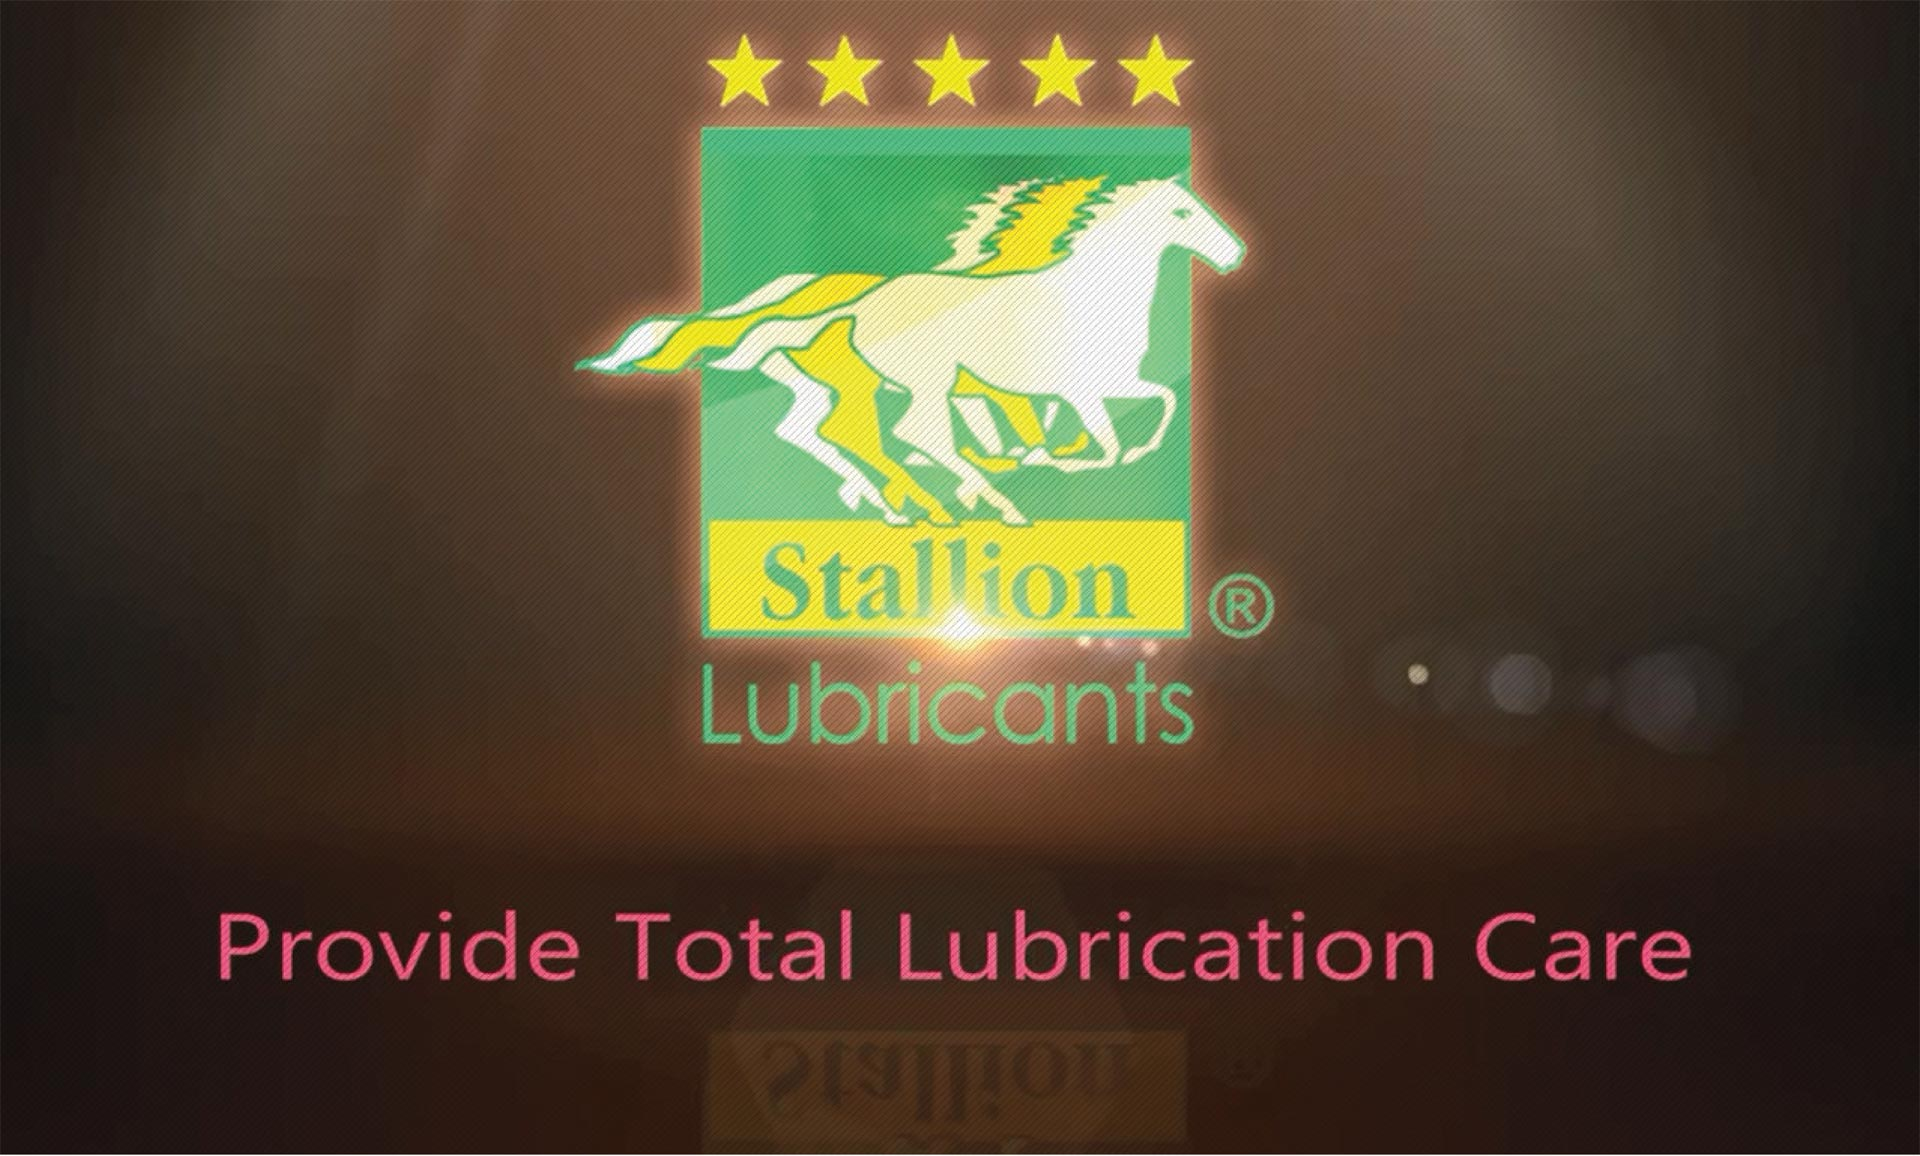 stallion-website-logo-1